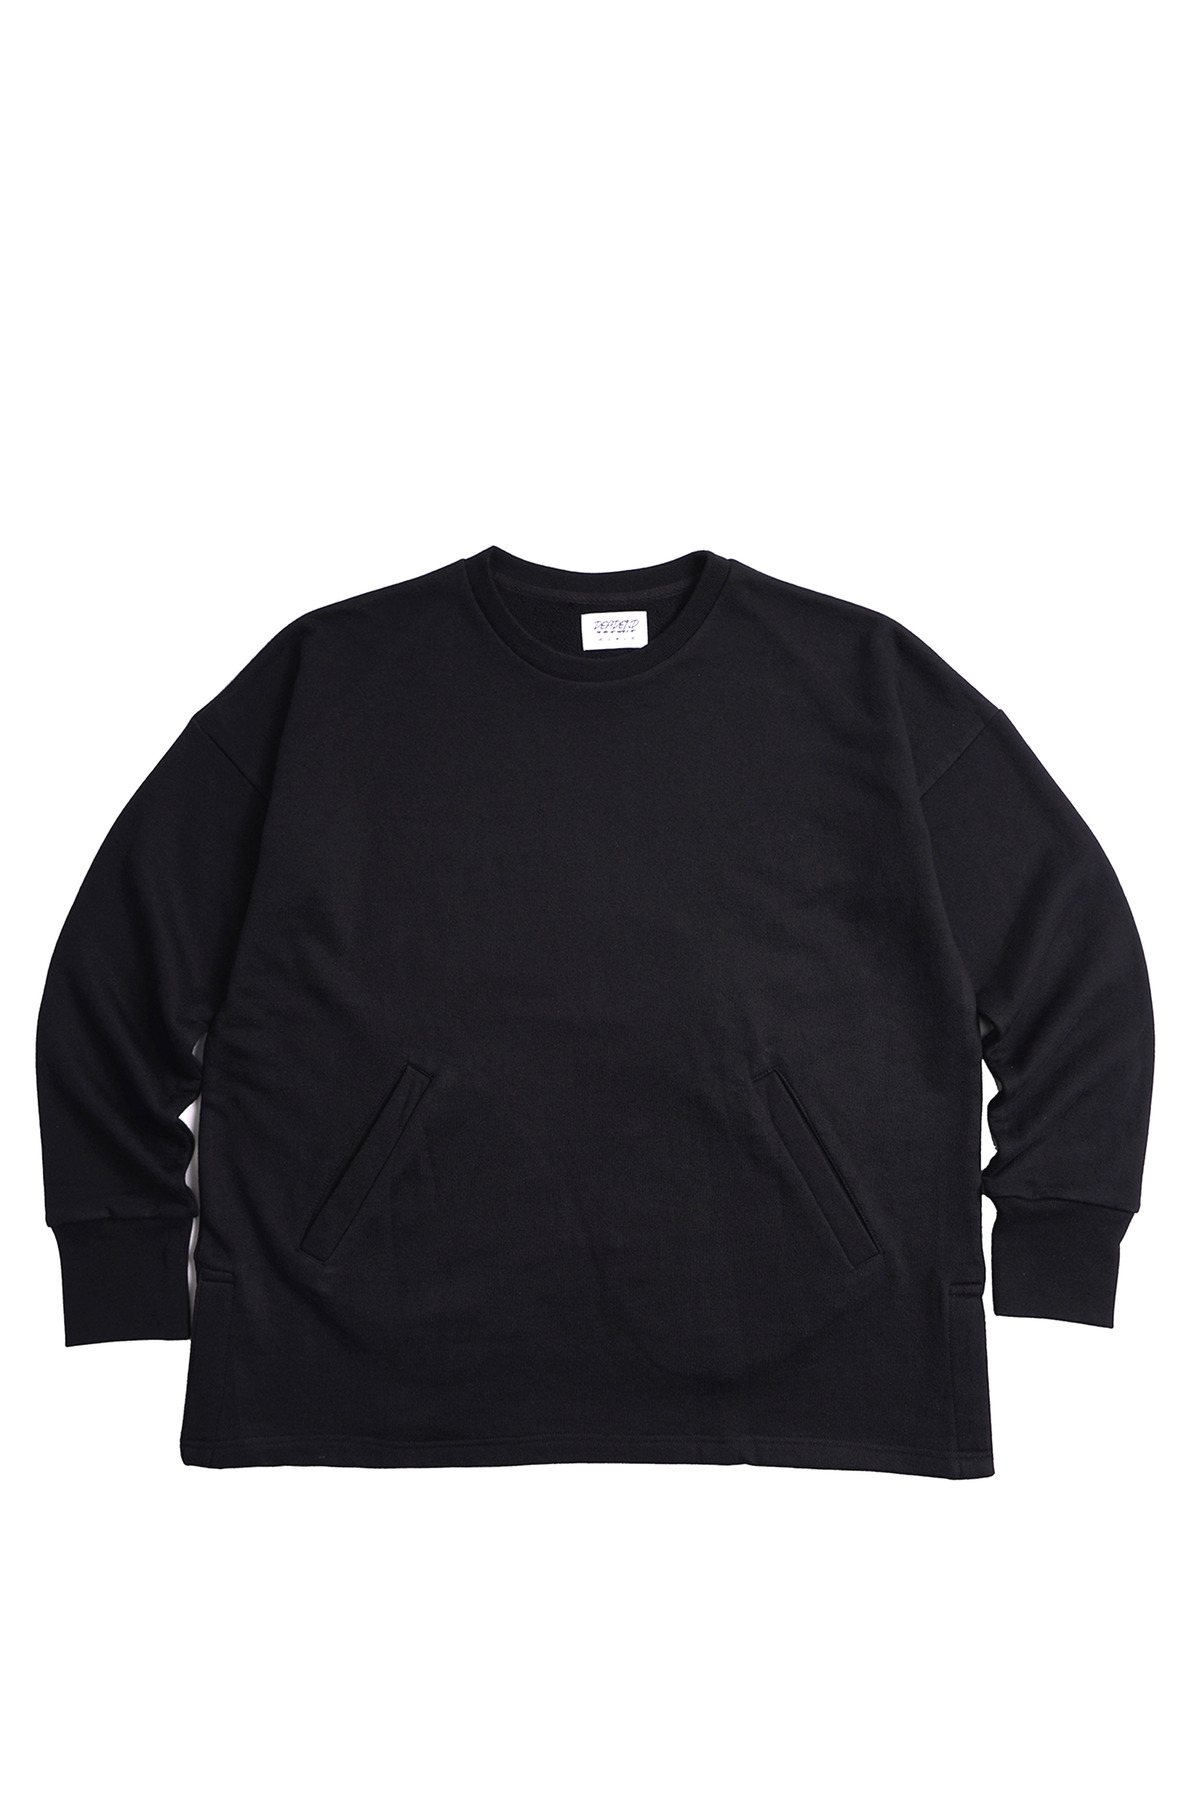 BLACK SET IN RAGLAN SWEAT SHIRTS